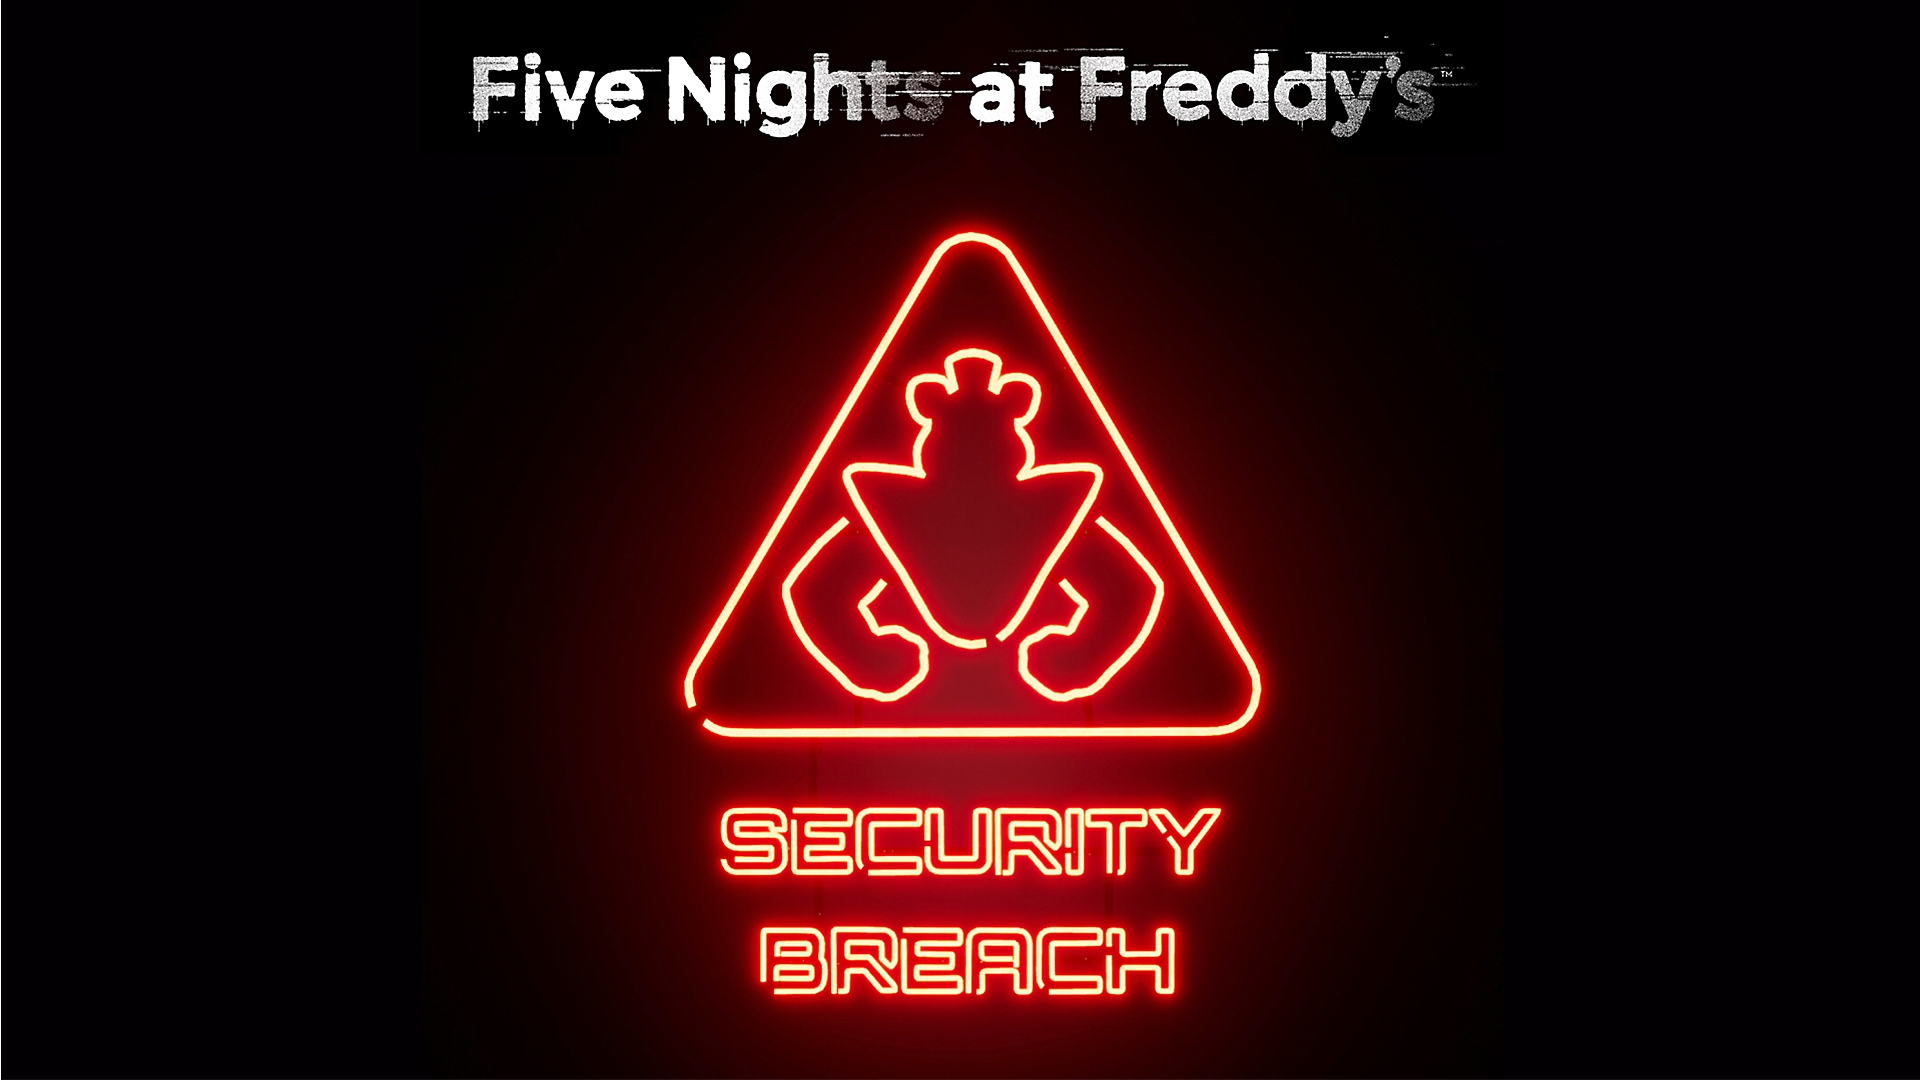 Five Nights at Freddy's: Security Breach - Gameplay Trailer | PS5